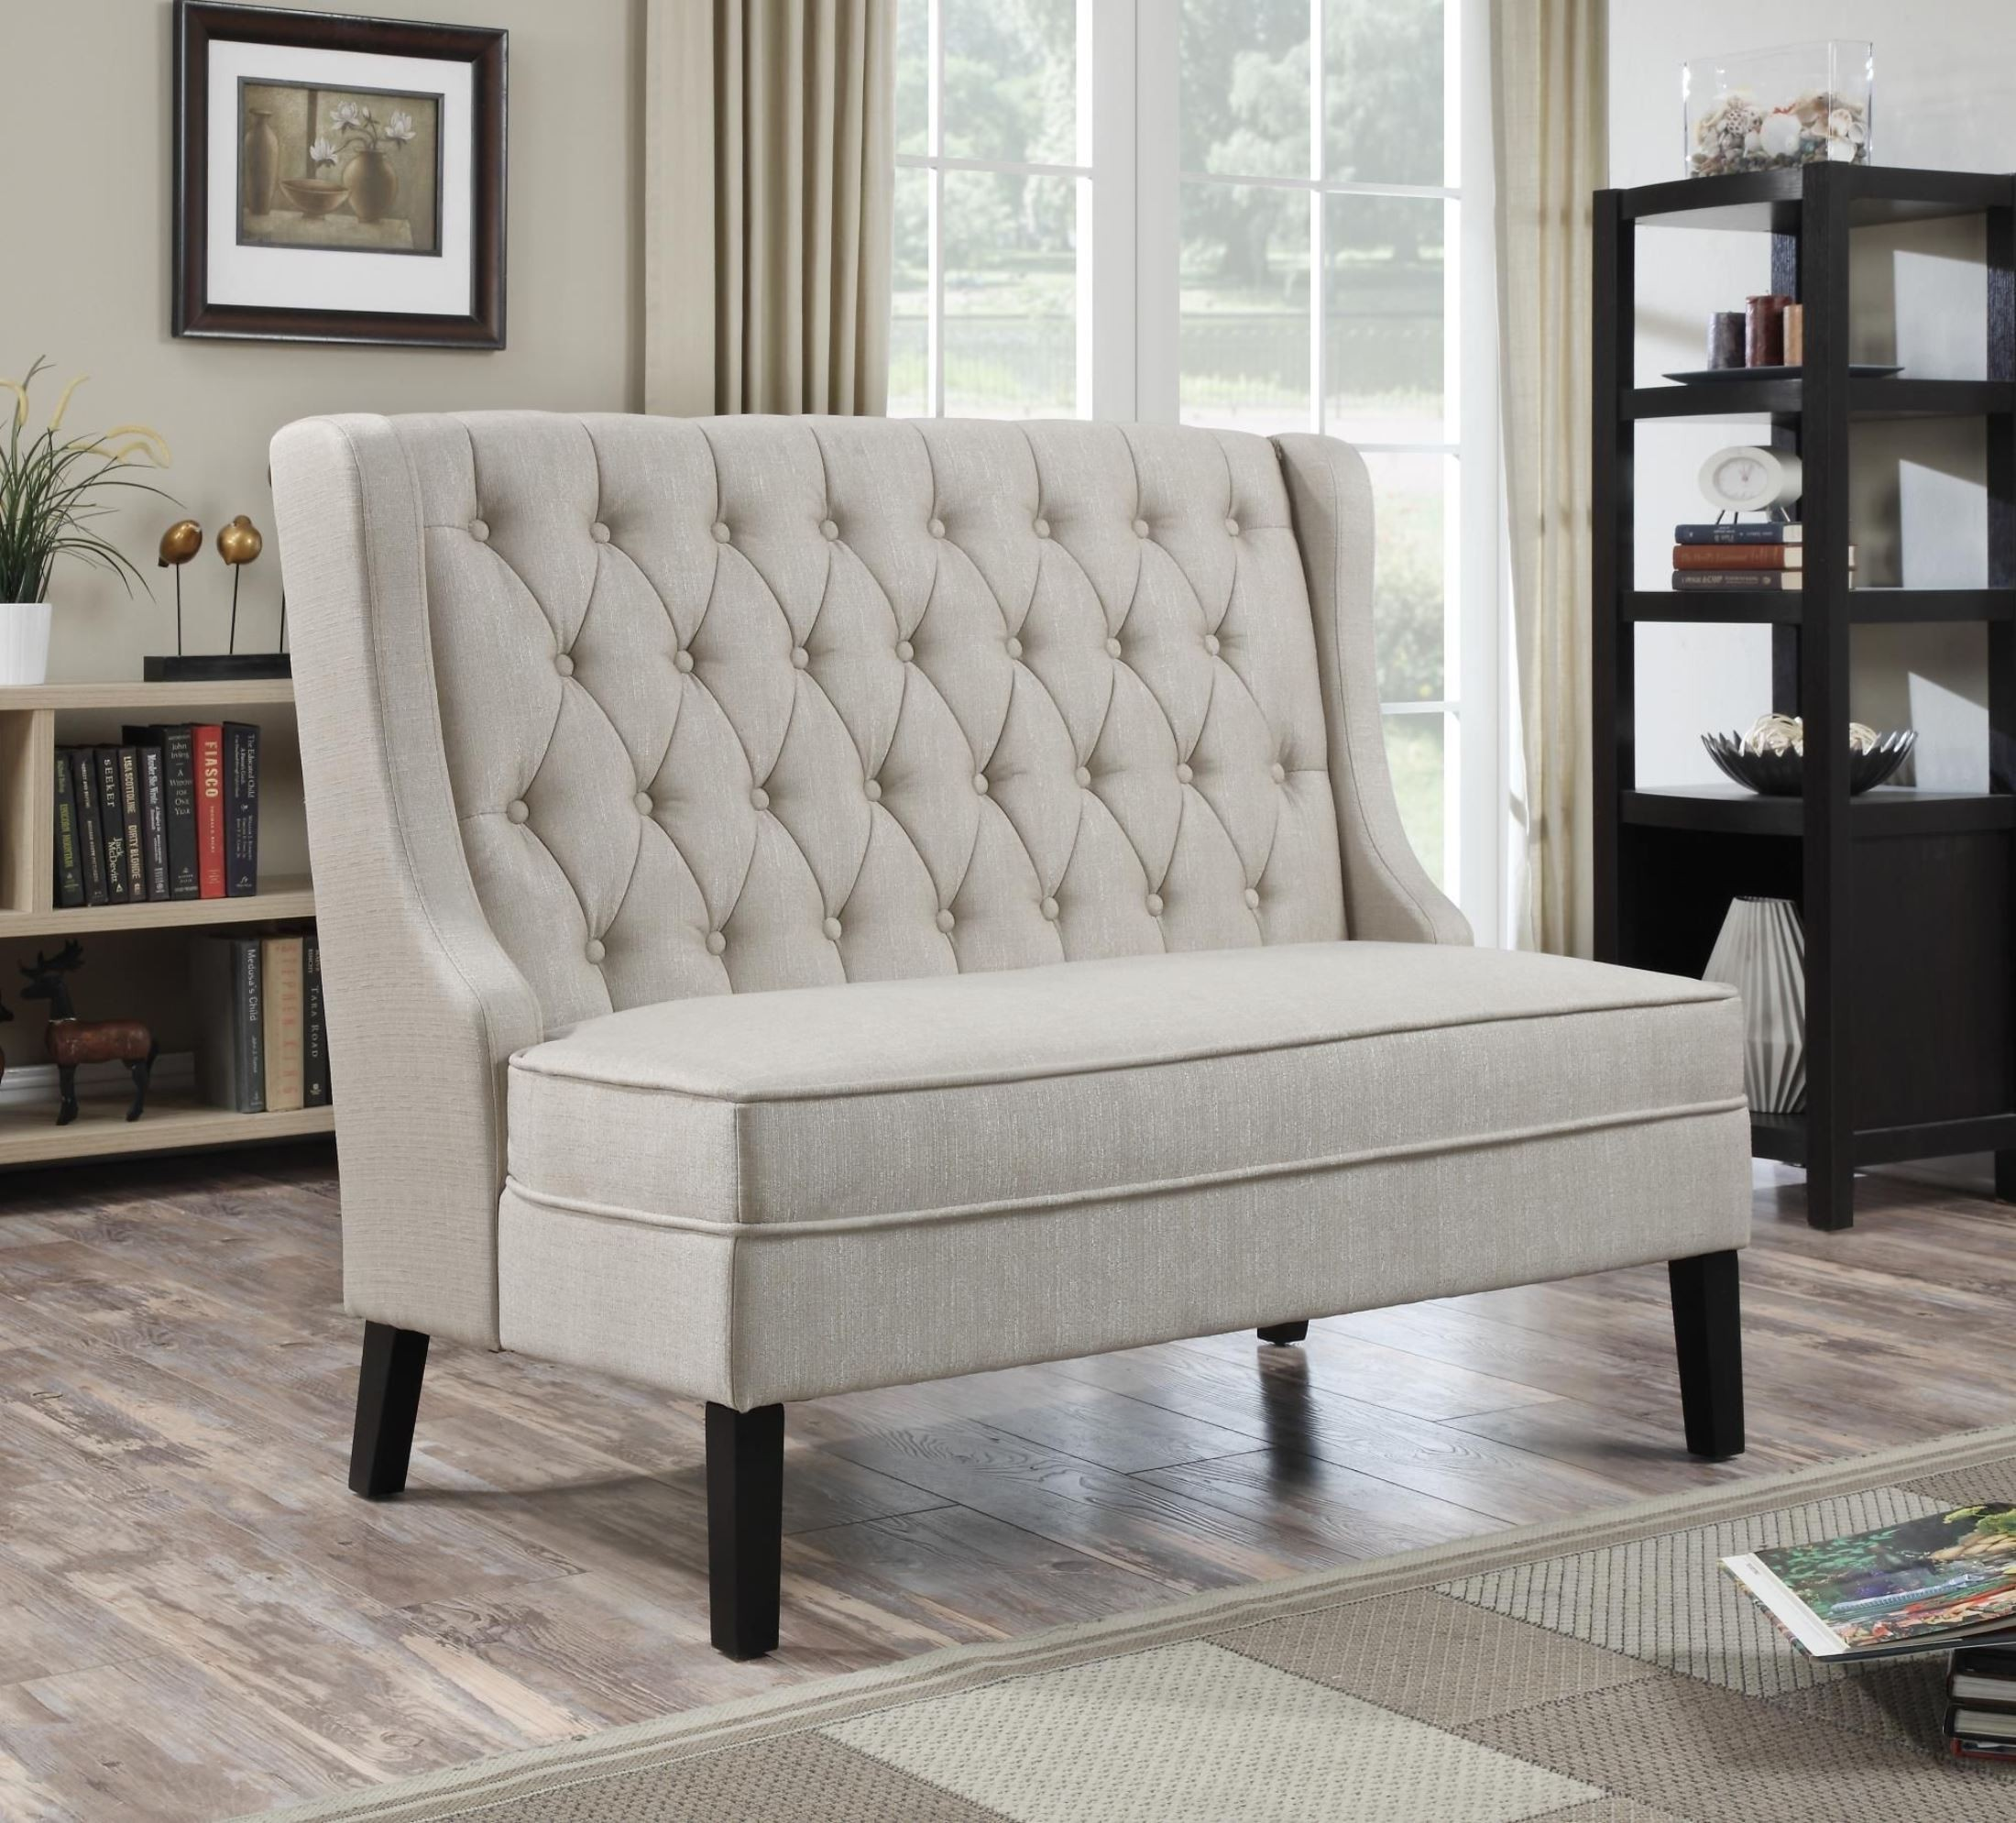 Tuxedo Oatmeal Banquette Bench From Pulaski Coleman